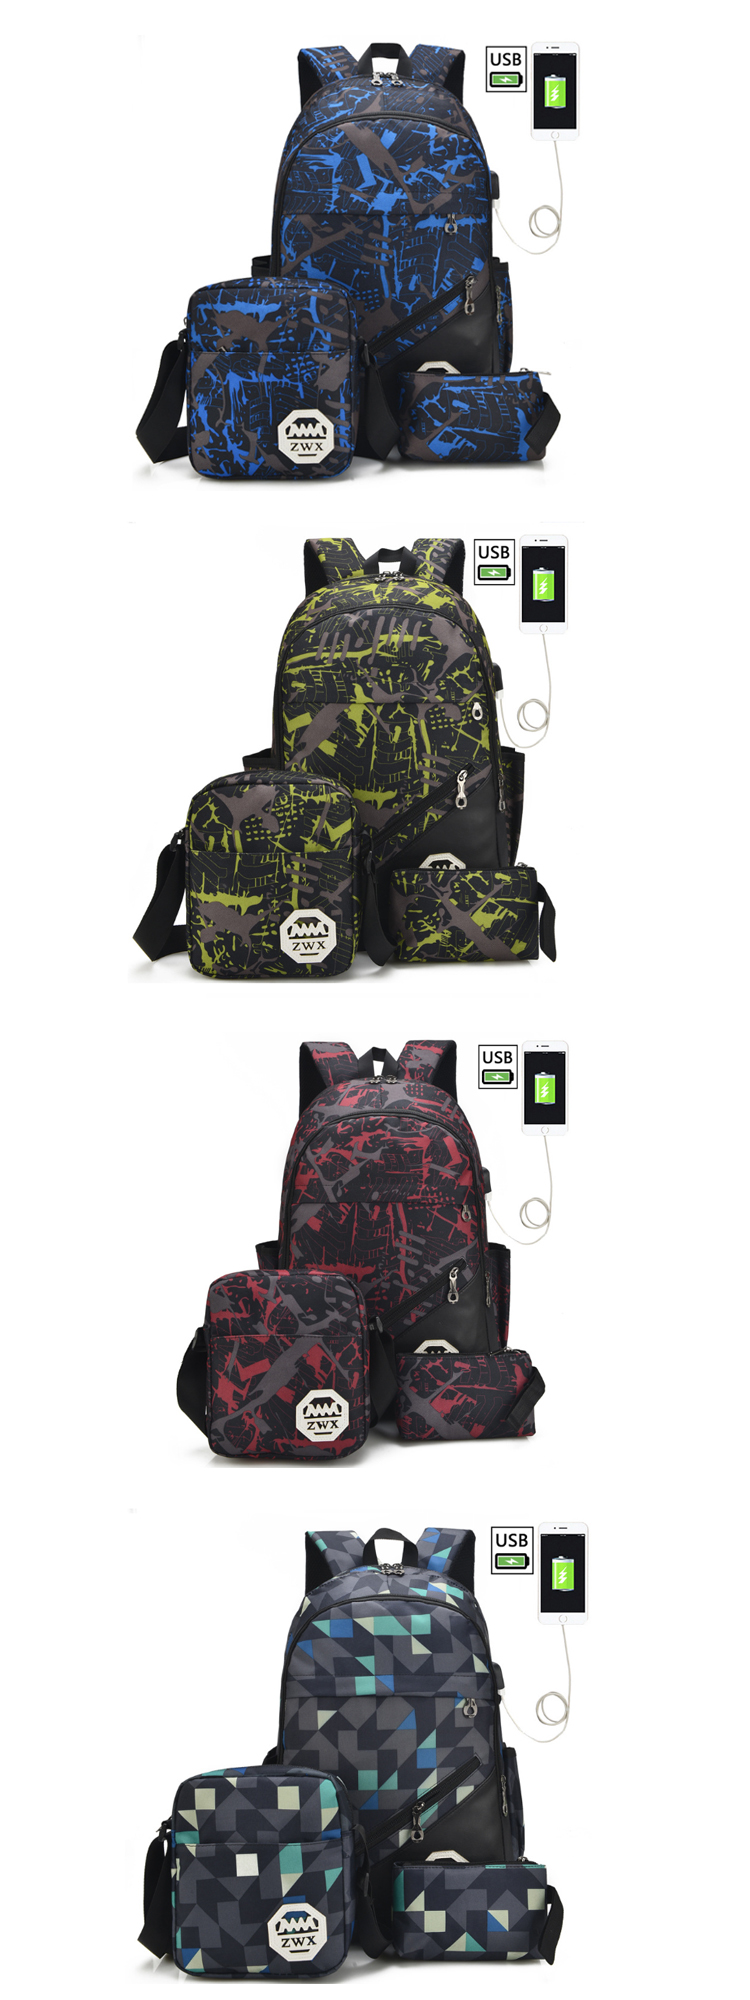 Osgoodway2 Wholesale Boys Backpack Printed 3 Pieces School Backpack Bag Set with USB Charger